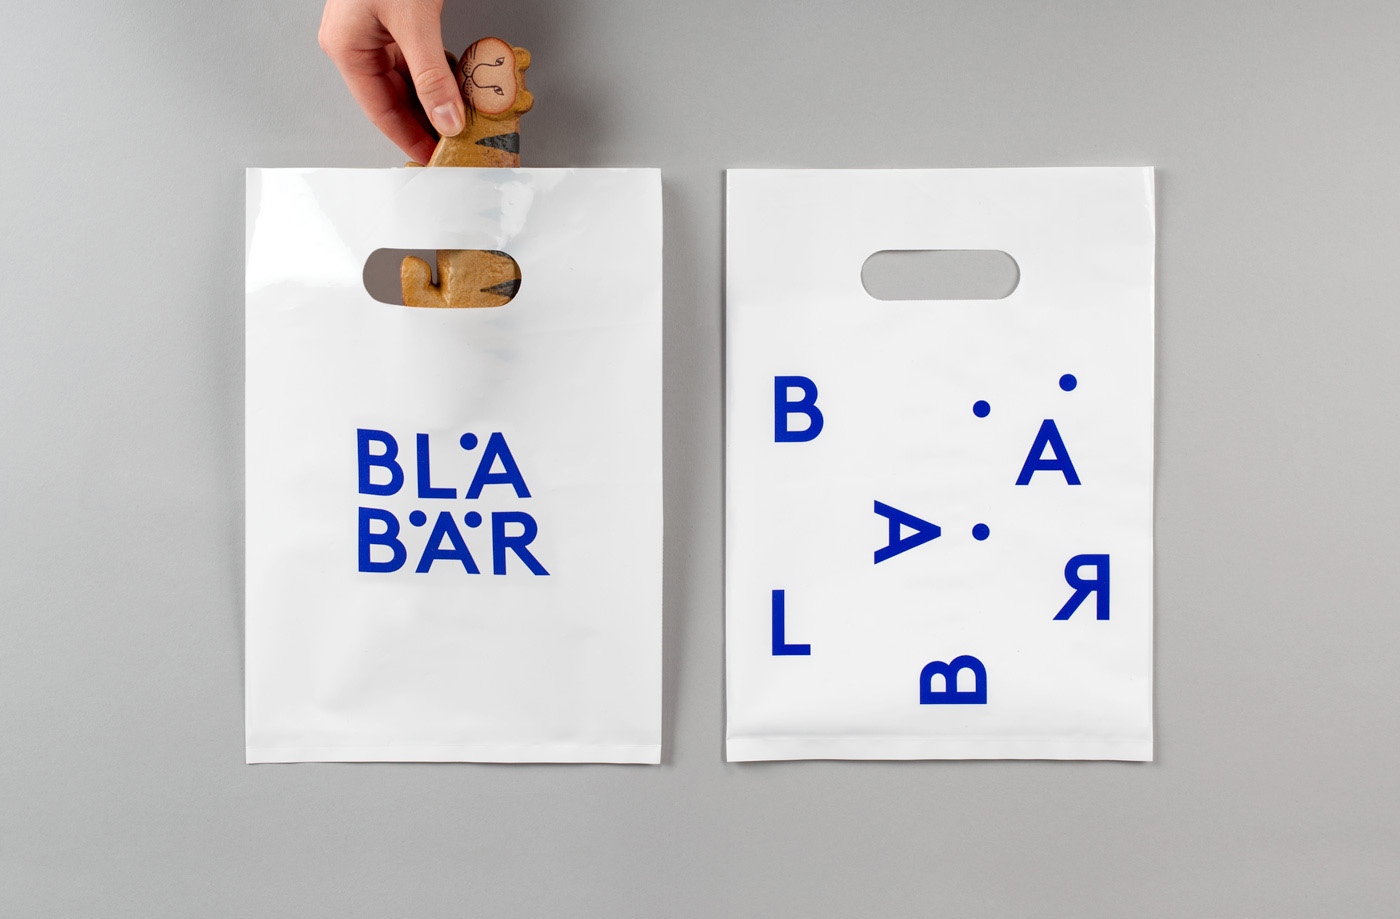 Brand identity and bags by Swedish studio BVD for Blå Bär, an Osaka-based retailer of Scandinavian goods